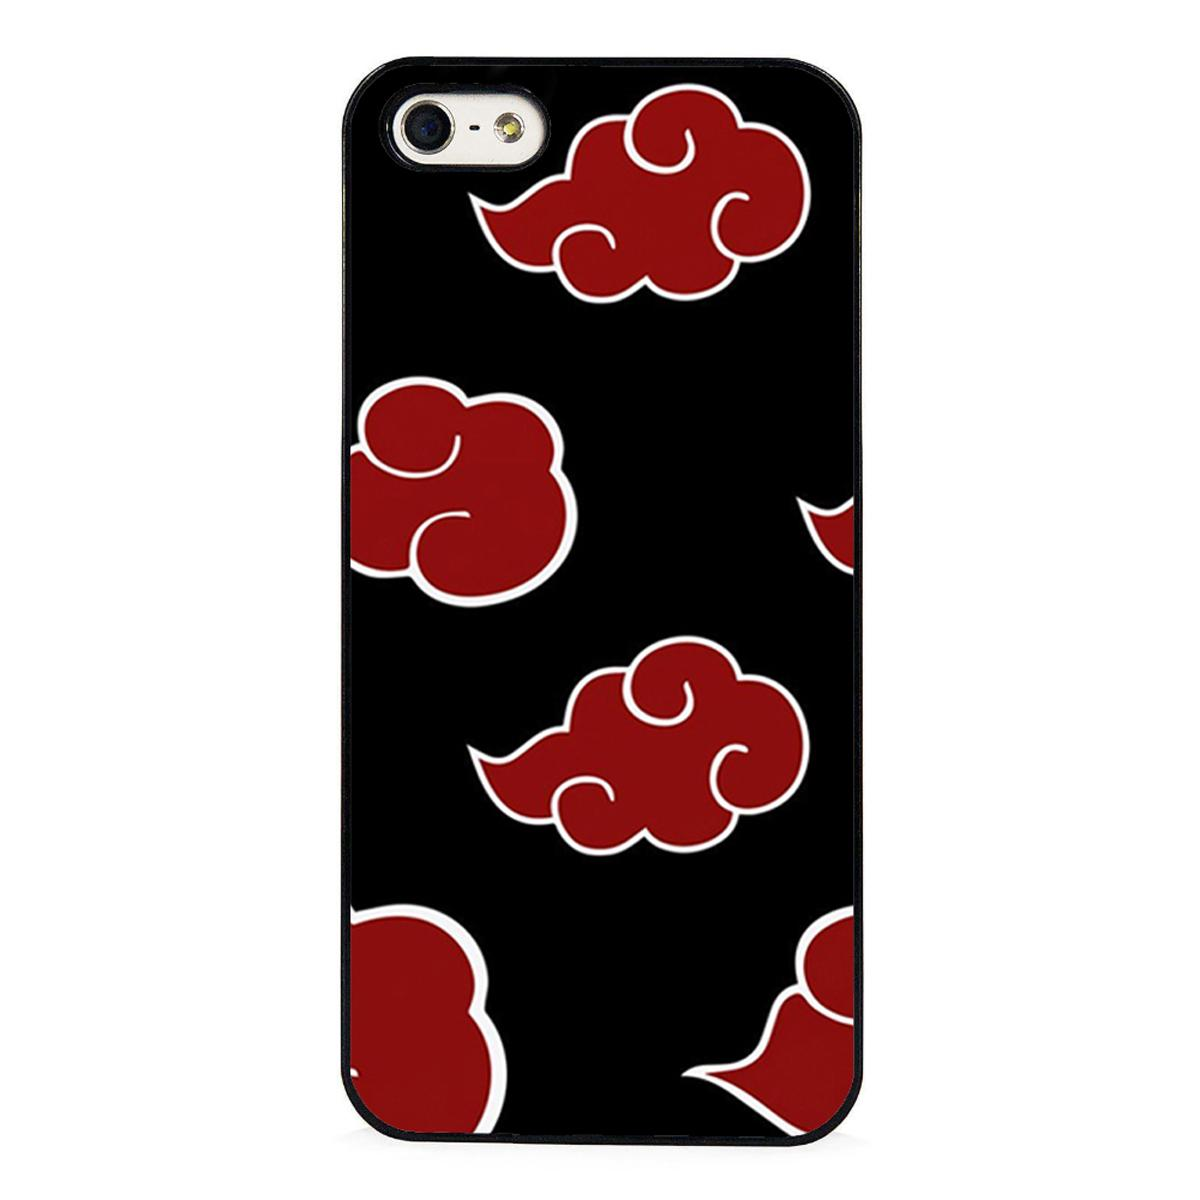 naruto akatsuki clan cloud phone cases for iphone 6 6s plus 7 7 plus